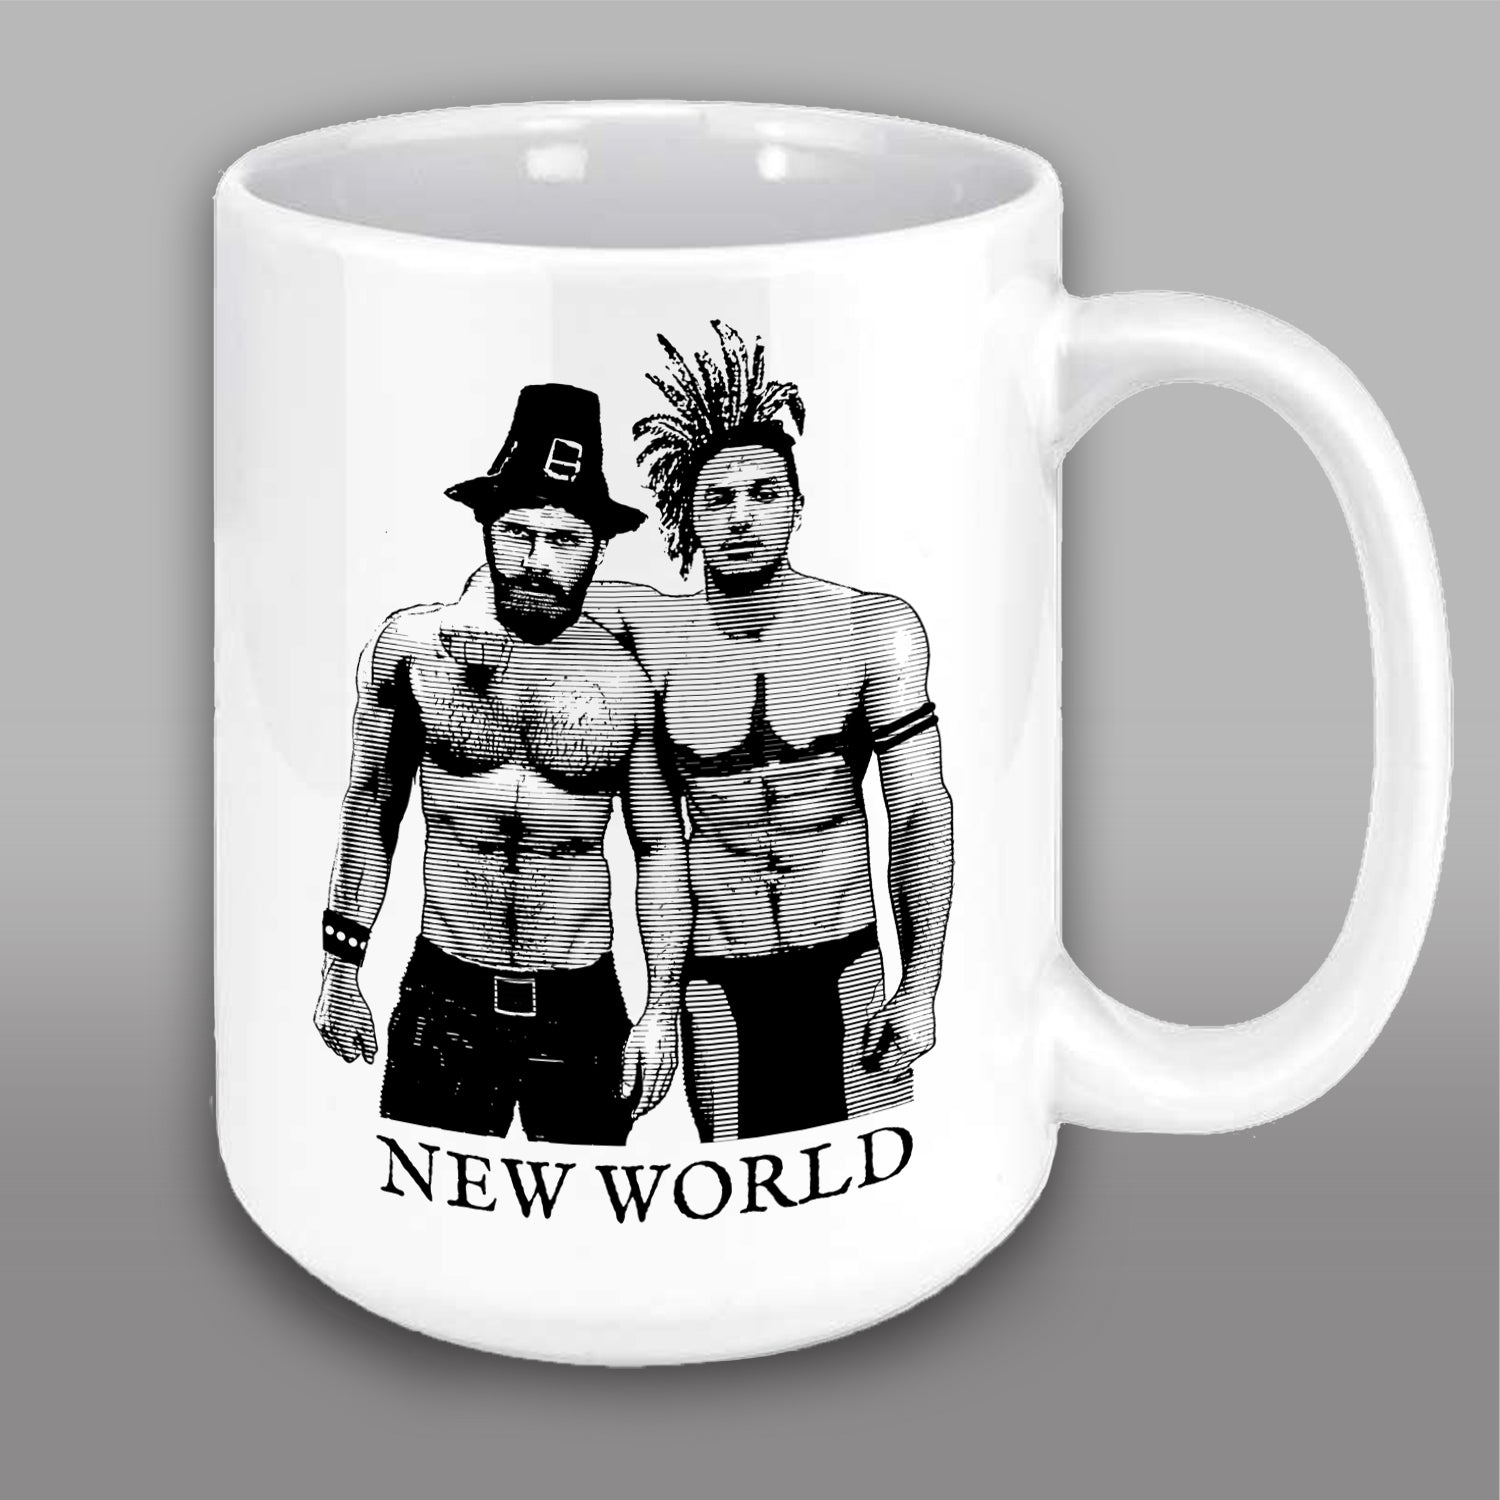 New World Mug